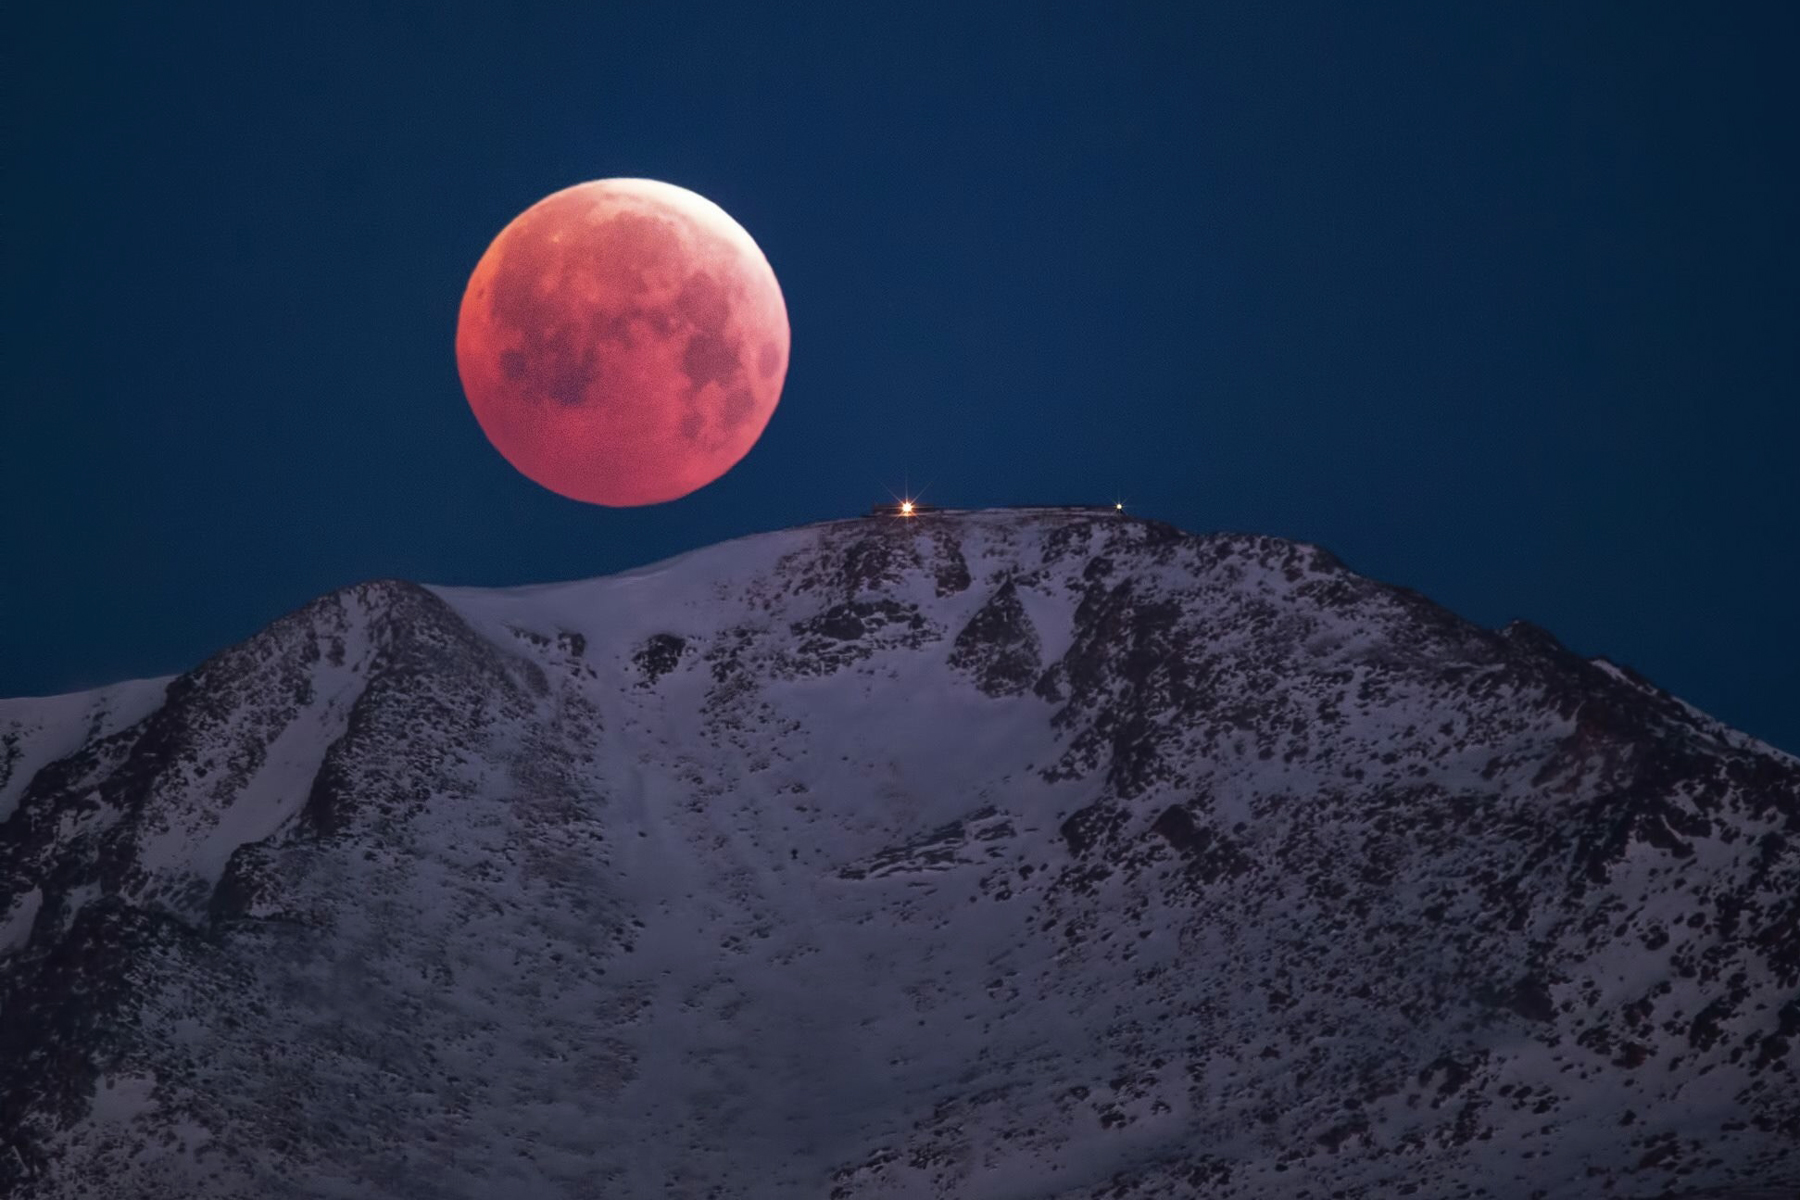 Scenic view of snowcapped mountain against sky at night with large full moon